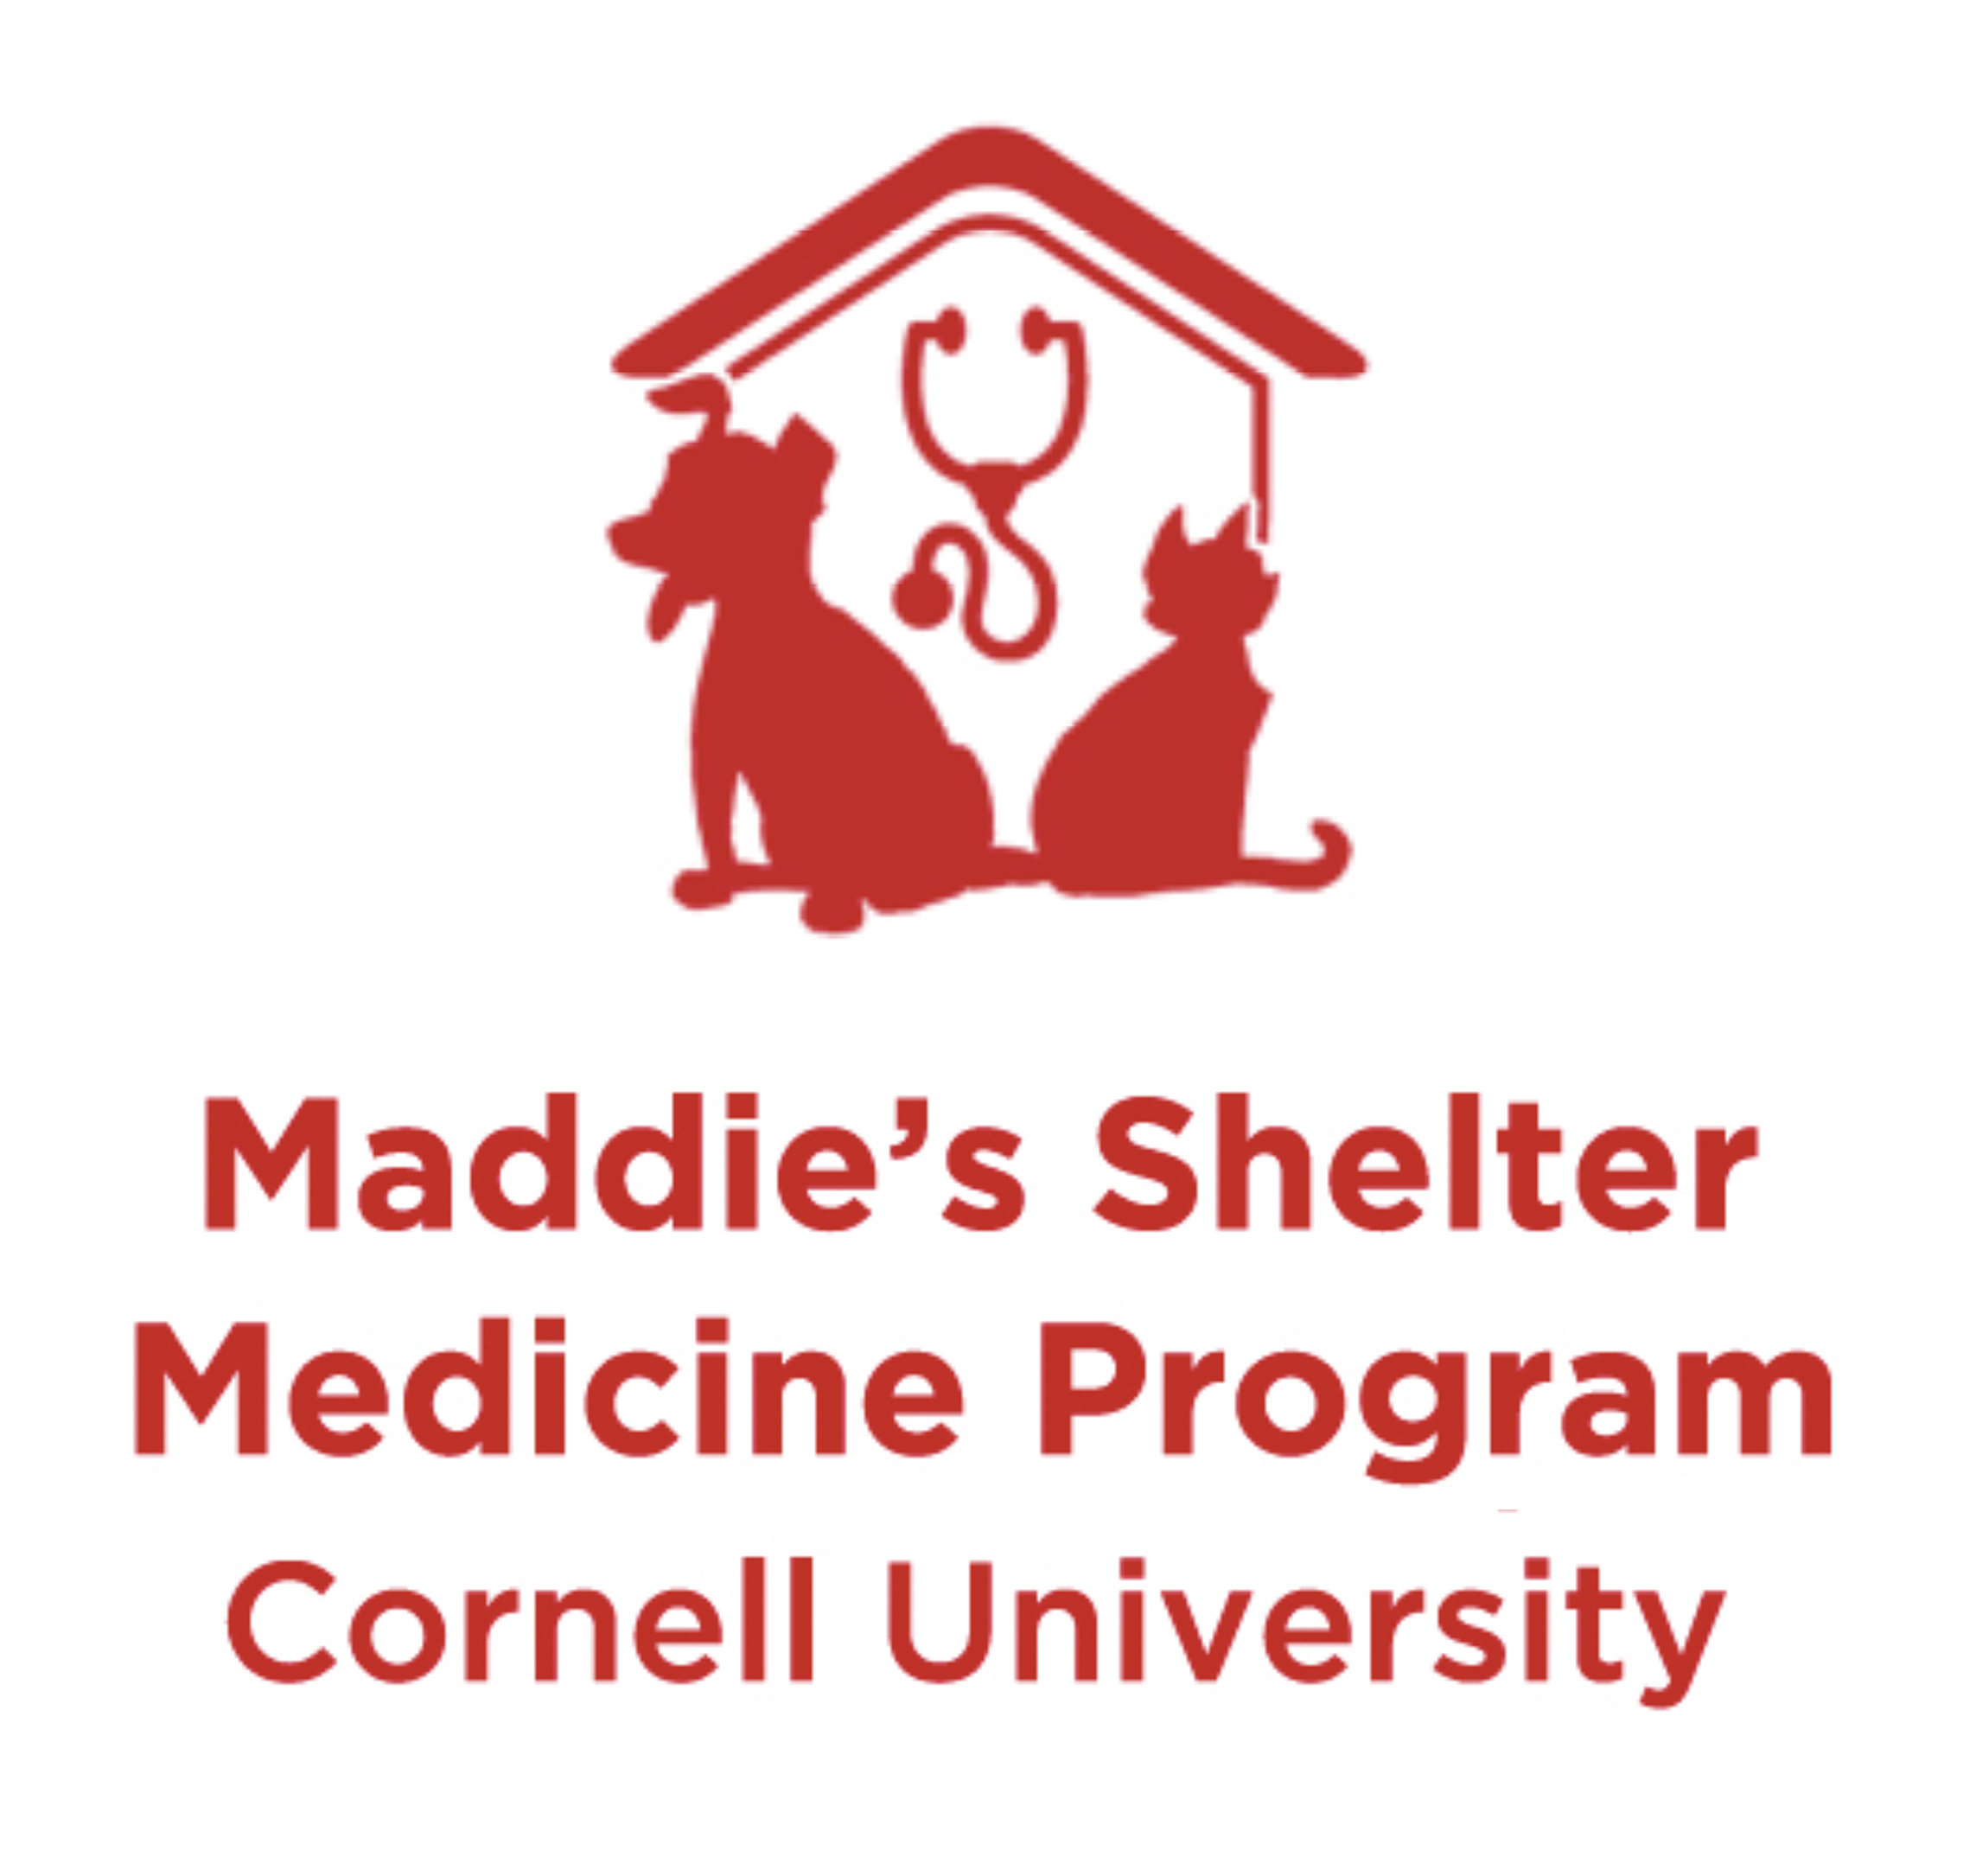 Maddie's Shelter Medicine Program Cornell University